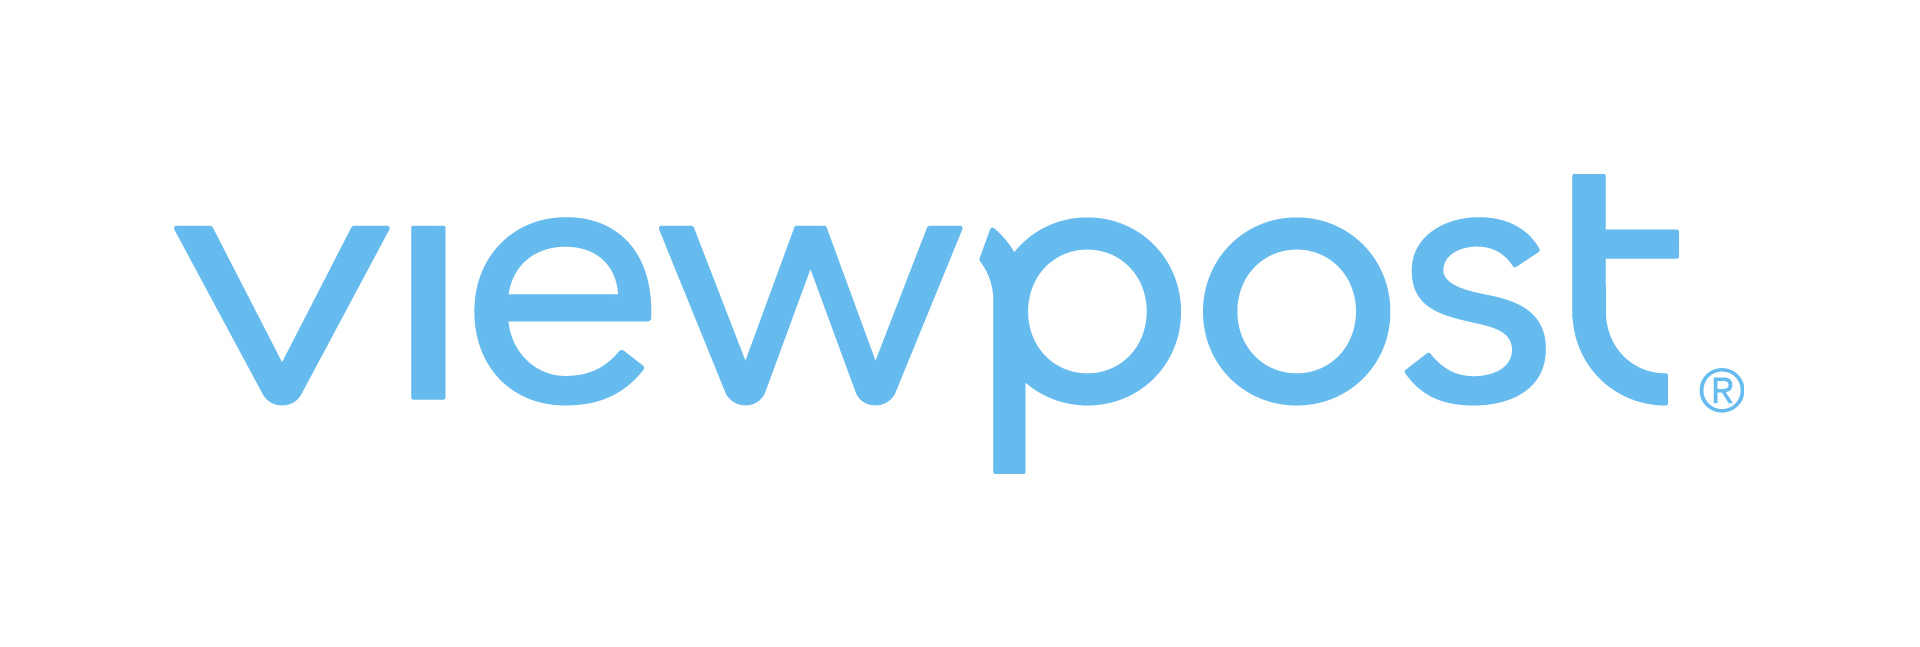 the viewpost logo is a registered trademark of viewpost LLC.